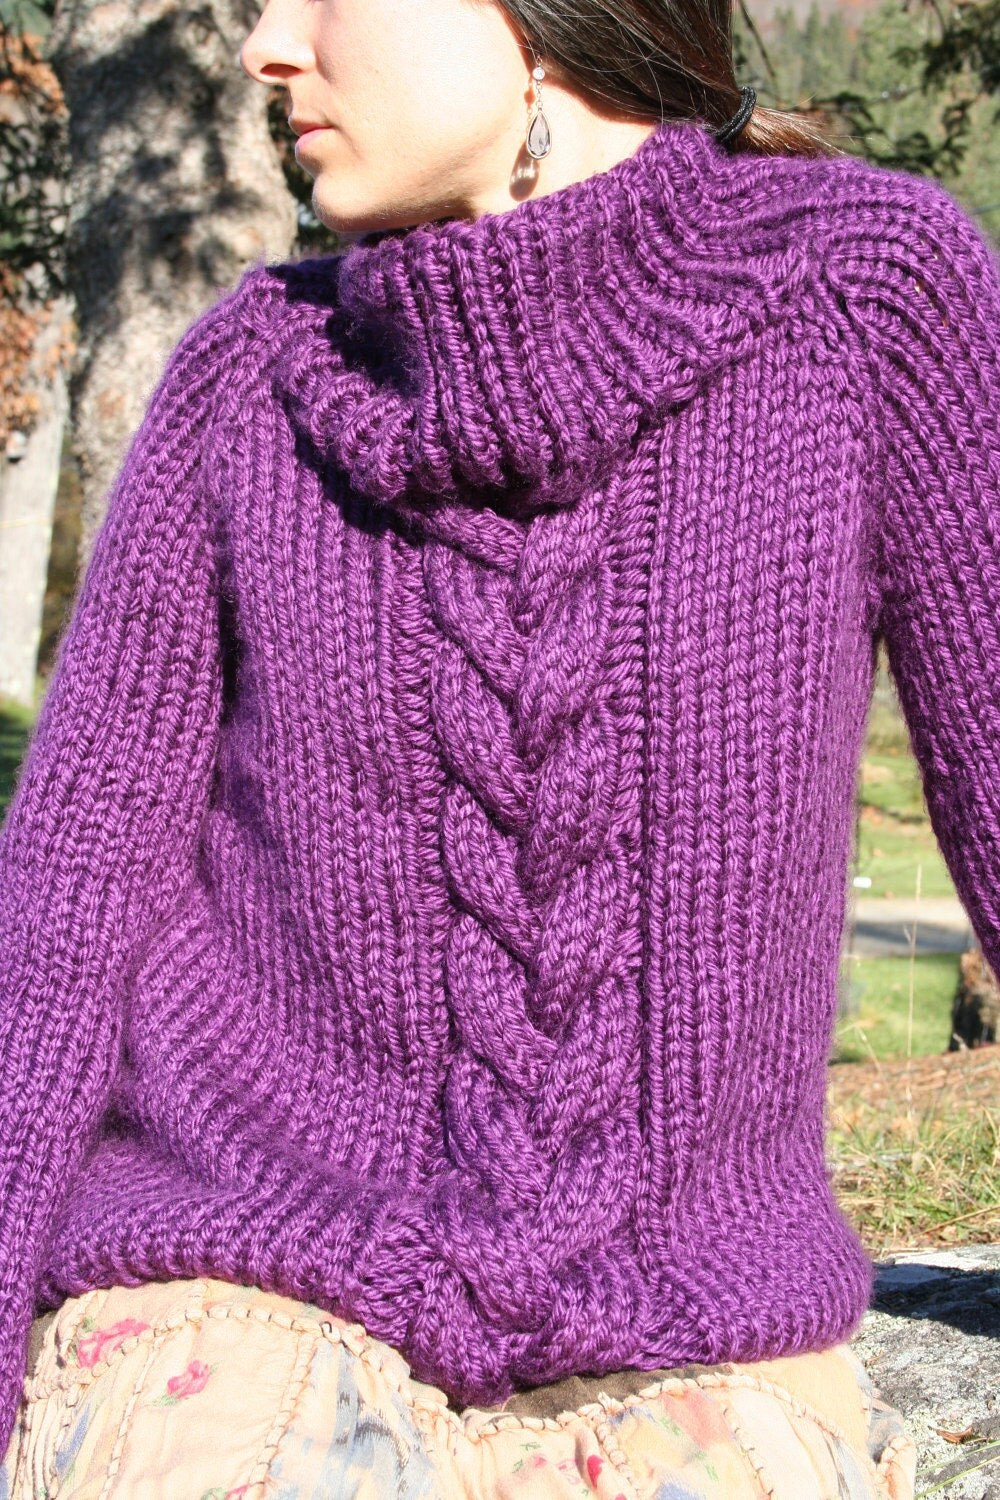 Chunky Knit Jumper Pattern : chunky sweater KNITTING PATTERN by AmandaLilleyDesigns on Etsy